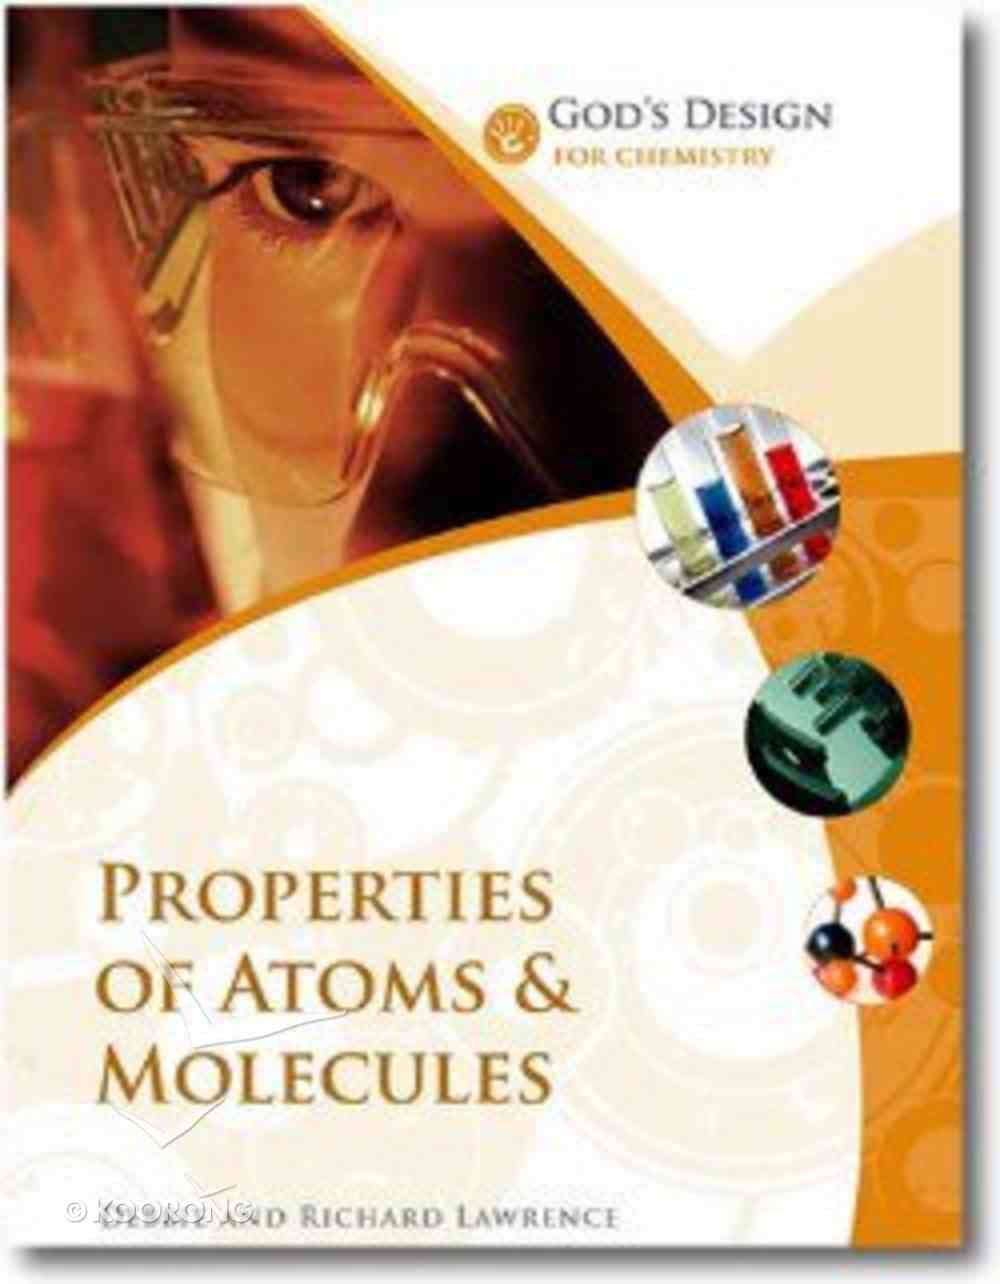 Properties of Atoms and Molecules (God's Design Series) Paperback